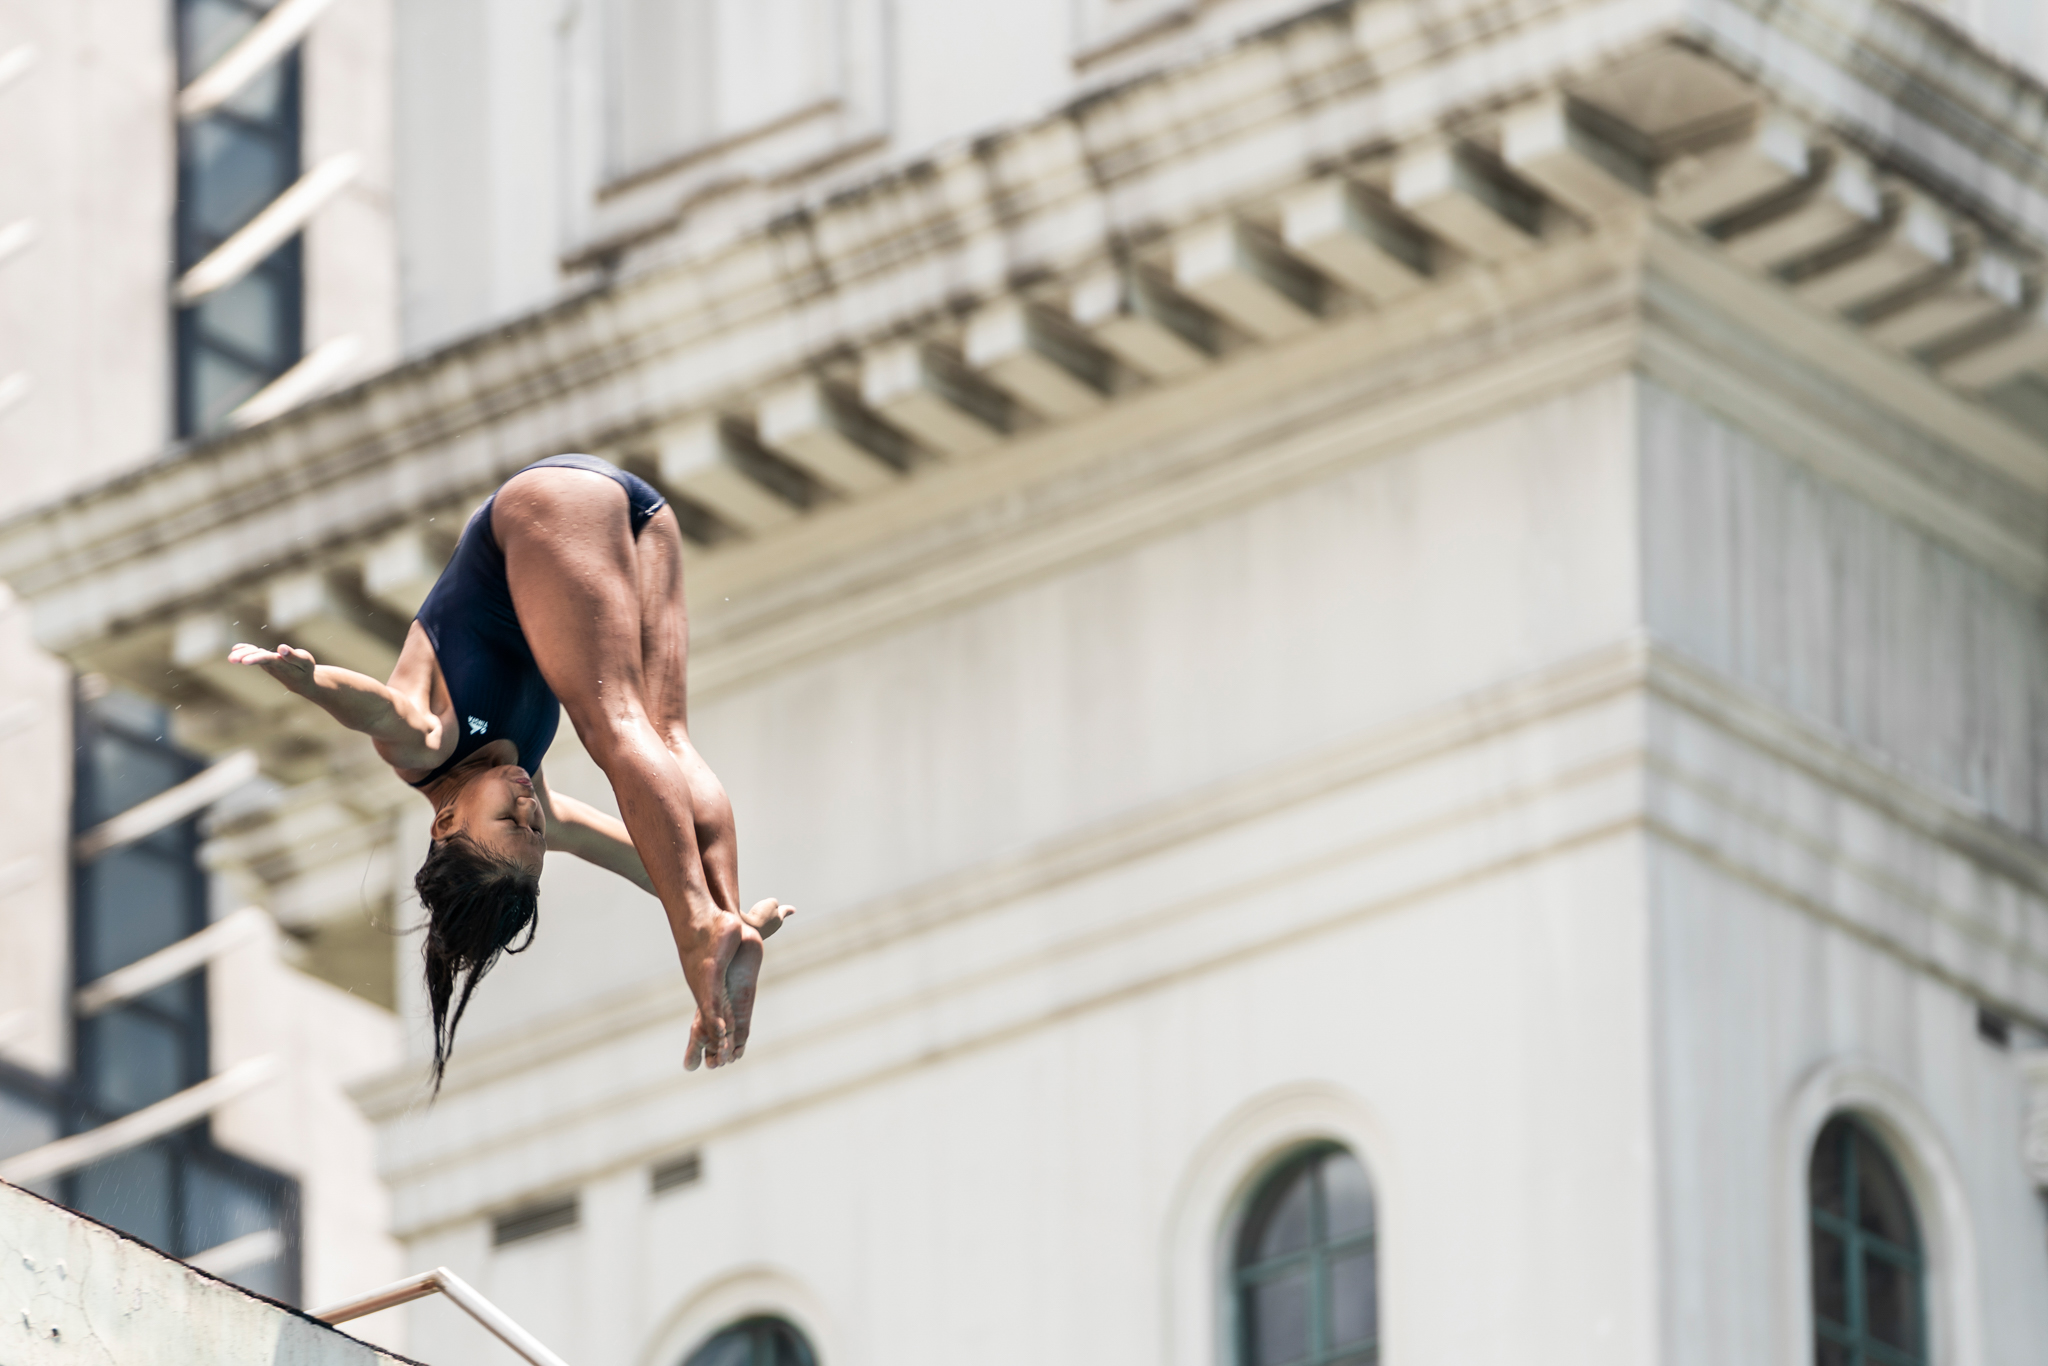 Marie Dimanche performs at the Red Bull Cliff Diving Workshop in Manila, Philippines on April 4, 2019